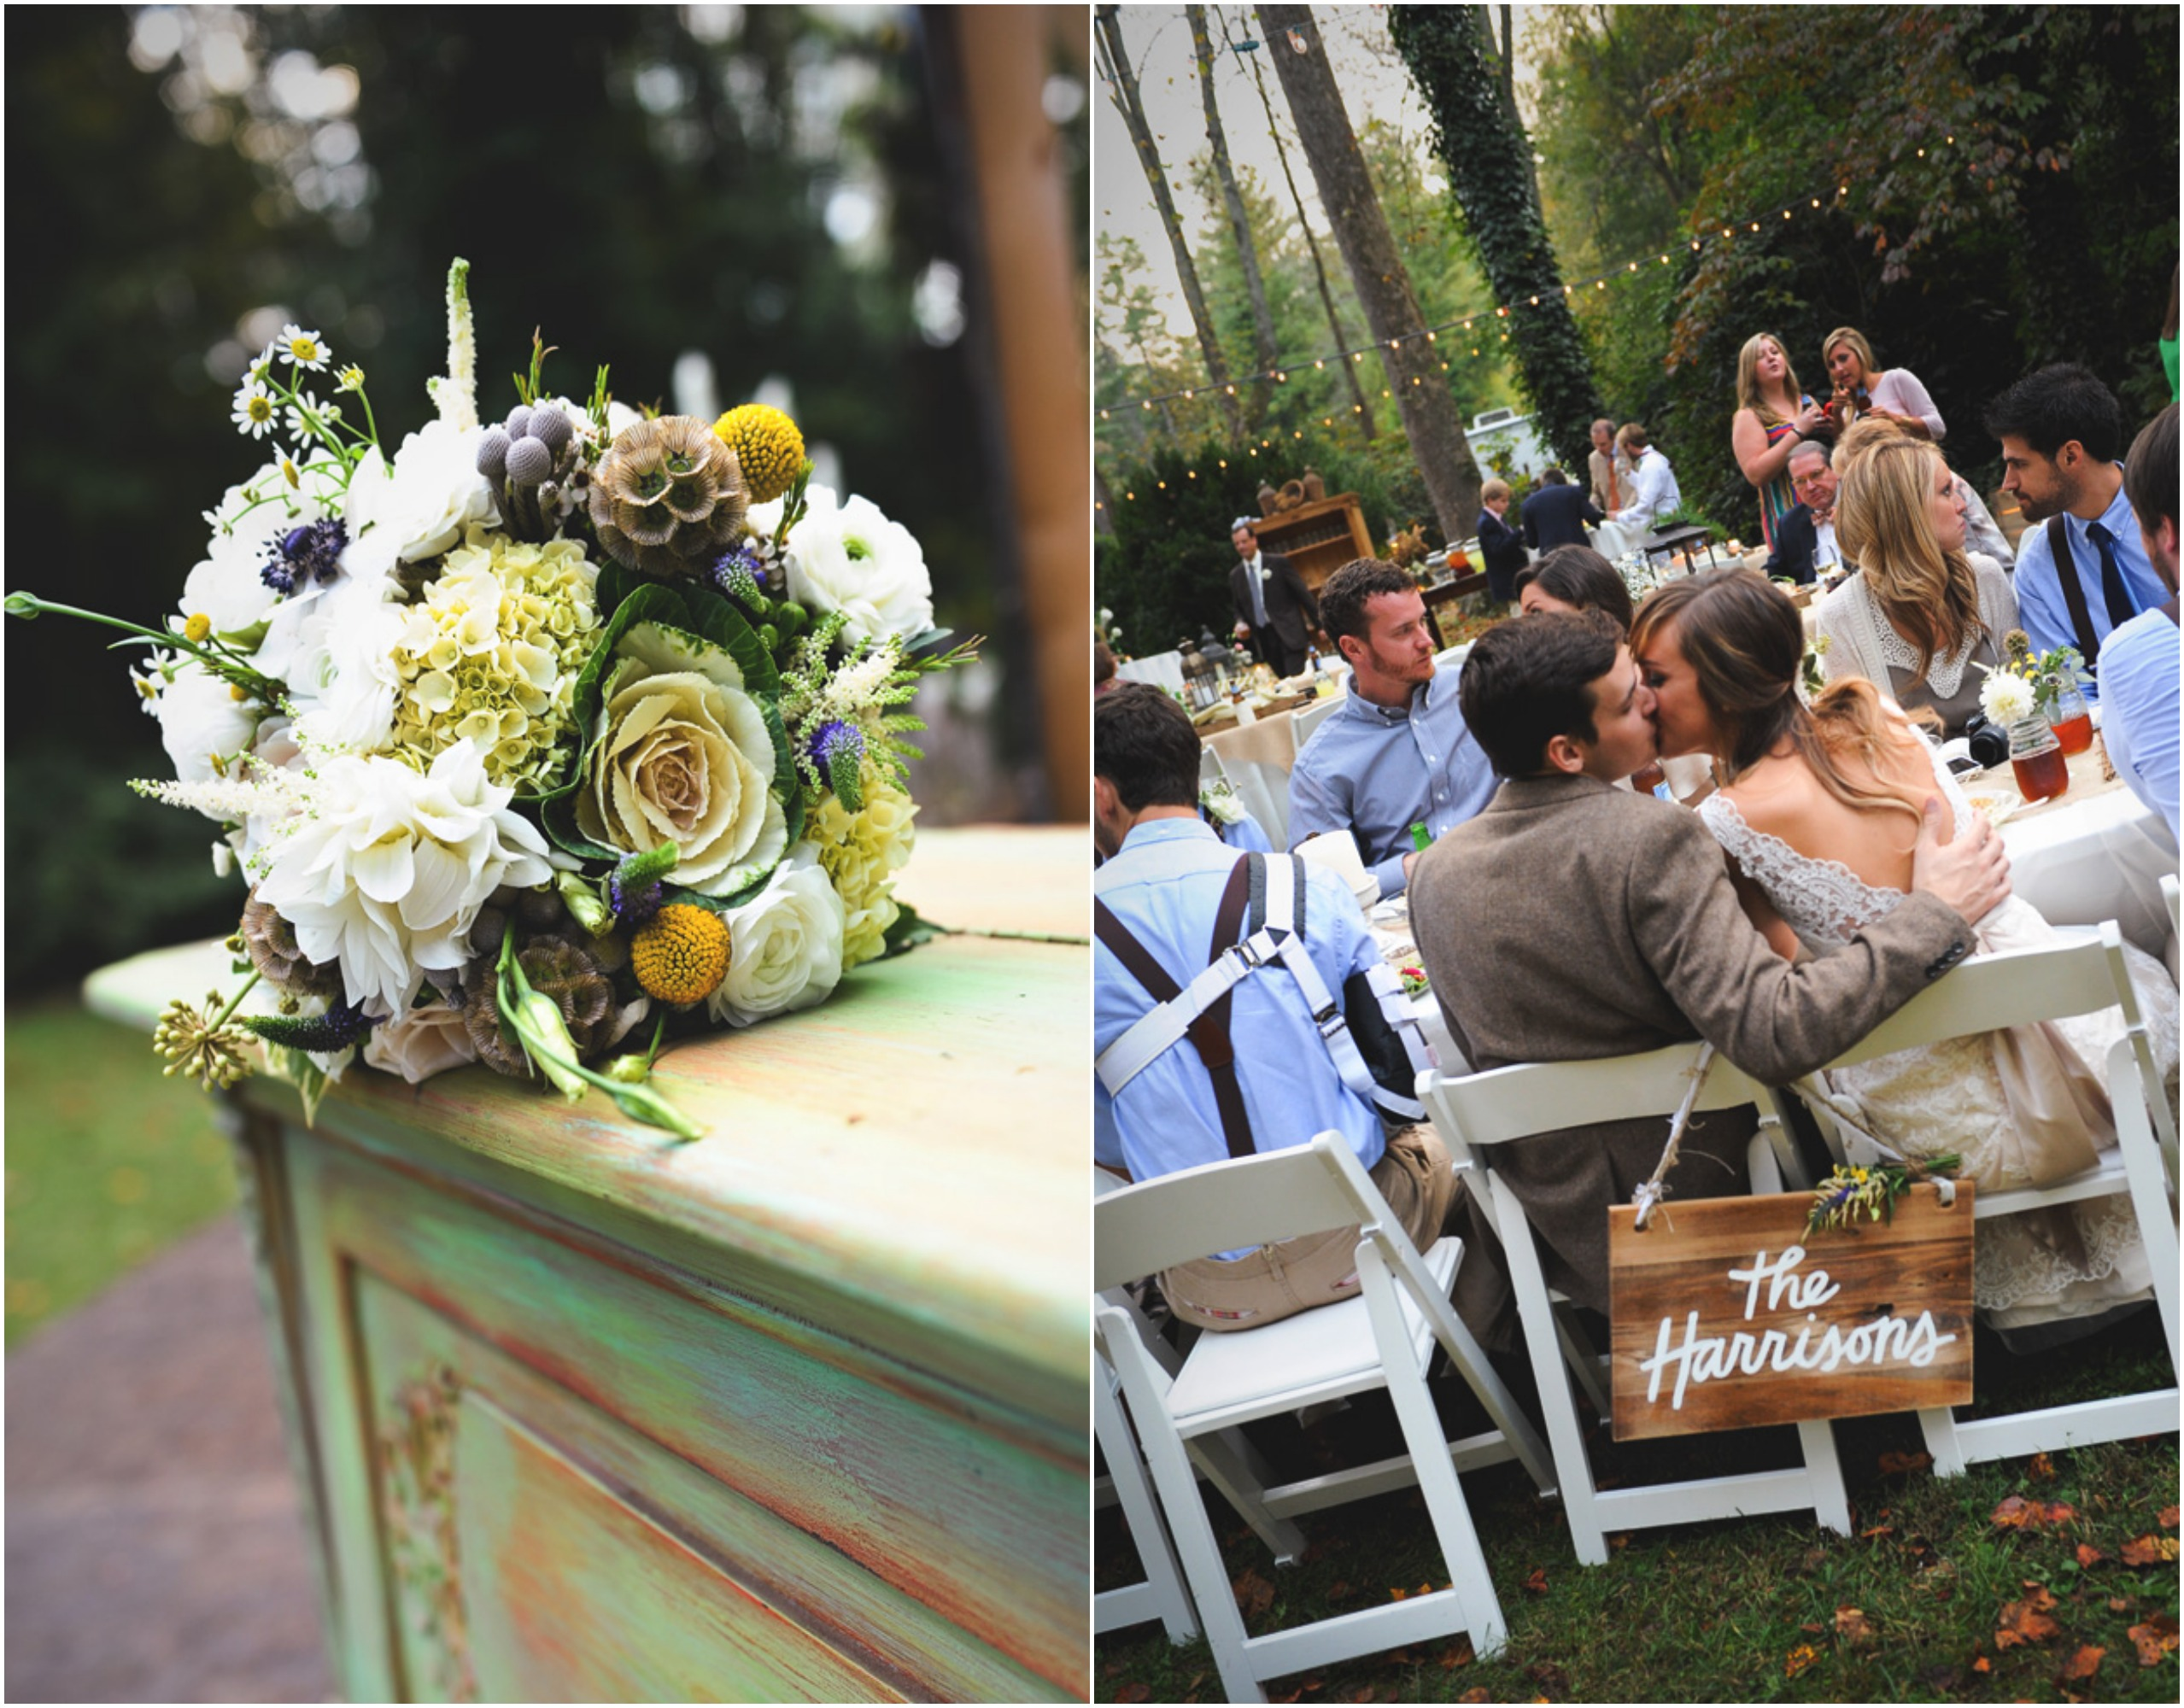 Rustic Vintage Backyard Wedding Of Emily Hearn  Rustic. Makeup Invention Ideas. Kitchen Ideas For Ranch House. Art Ideas Remembrance Day. Kitchen Valance Ideas From Napkins. Breakfast Ideas In Hotel Room. Diy Shabby Chic Kitchen Ideas. Christmas Ideas For Parents. Breakfast Ideas Jamie Oliver